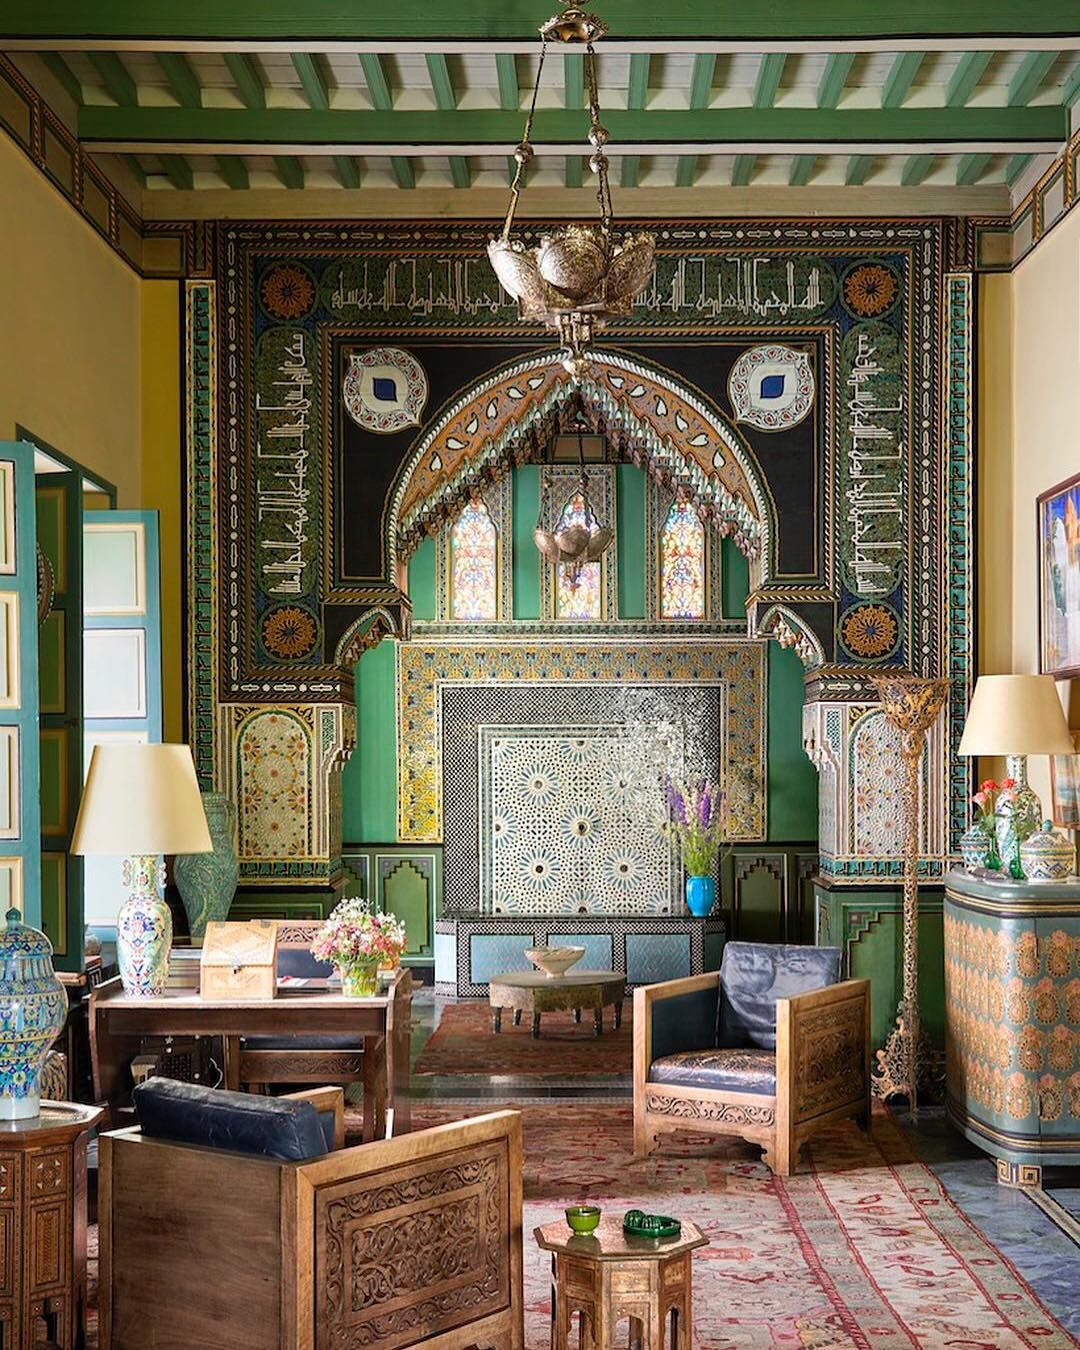 Salon Marrakech Elle Decor On Instagram Take A Look Inside Villa Oasis Yves